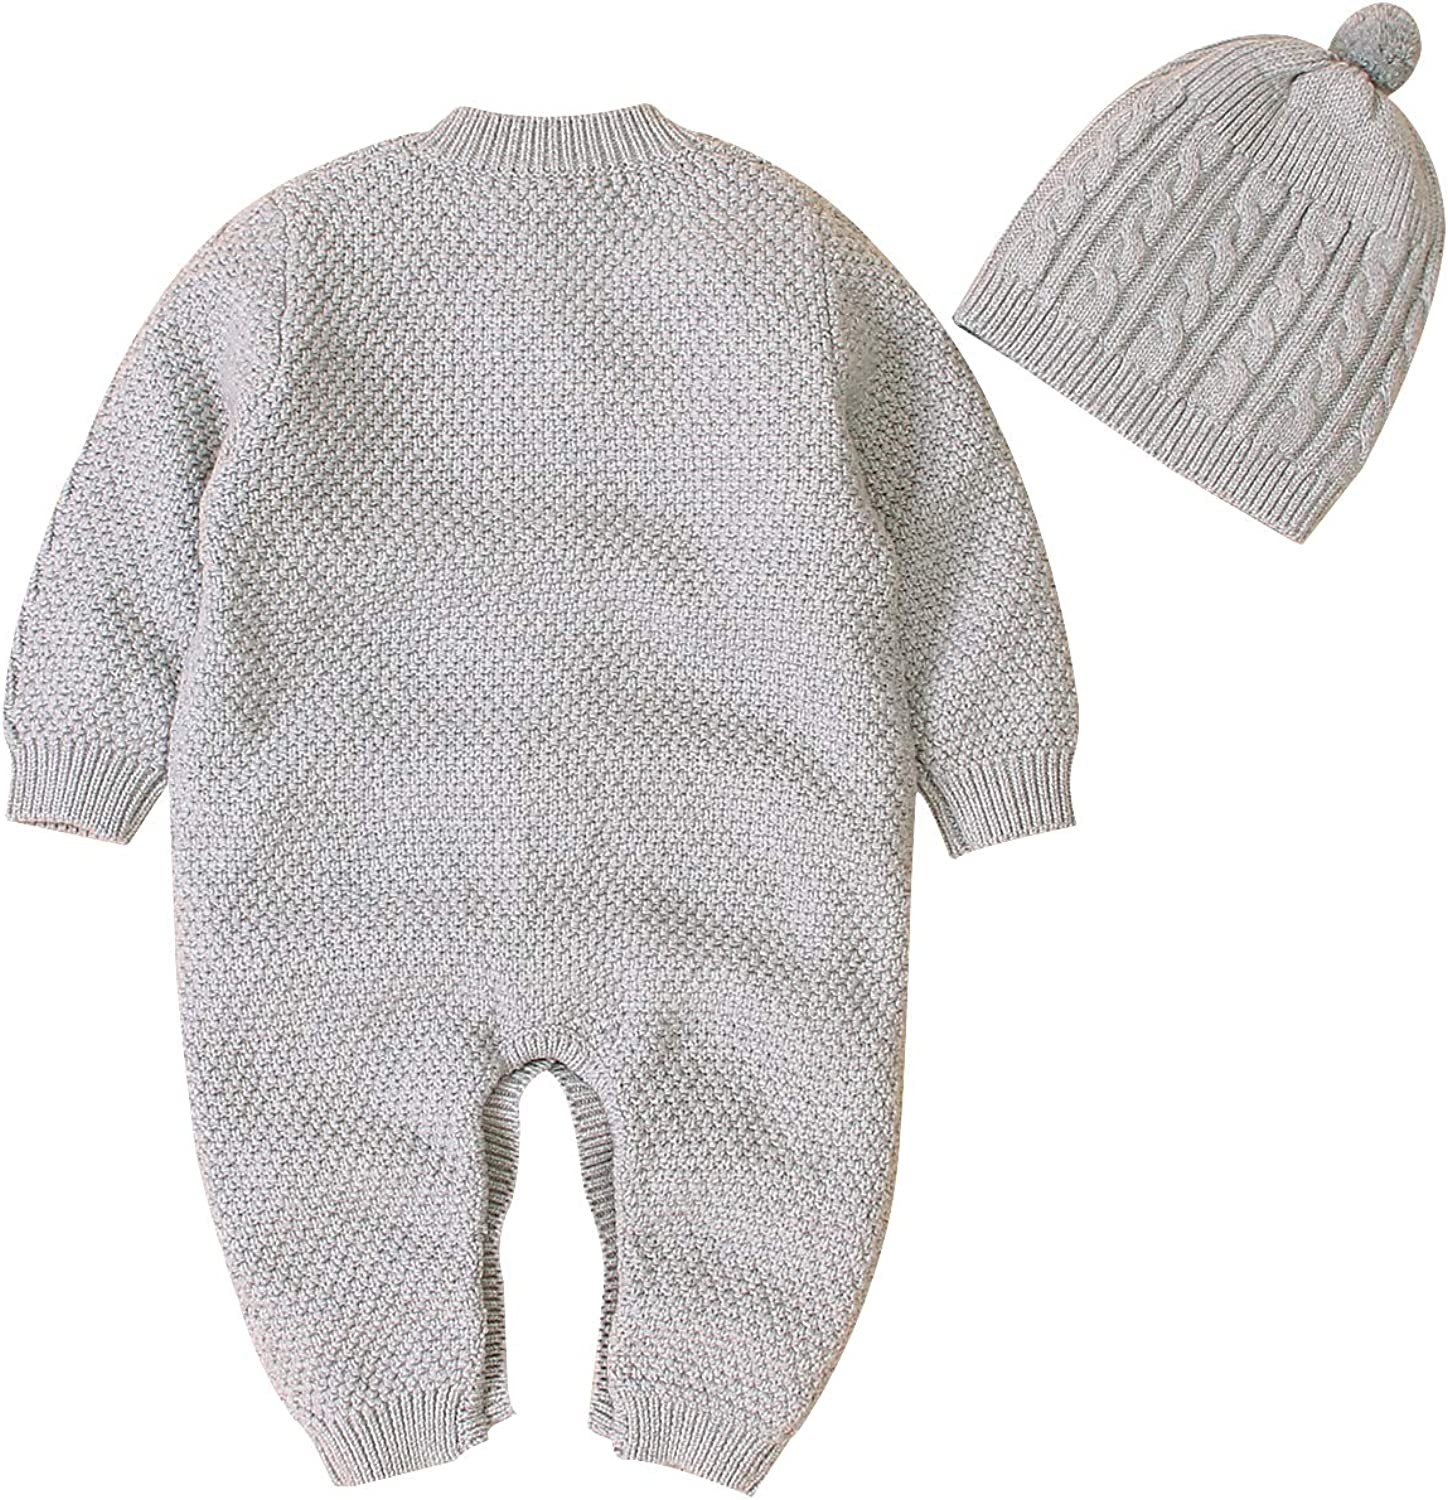 LuuBaby Newborn Baby Romper 2Pcs Infant Boy Gril Bodysuits Solid Color Knitted Jumpsuit Winter Outfits